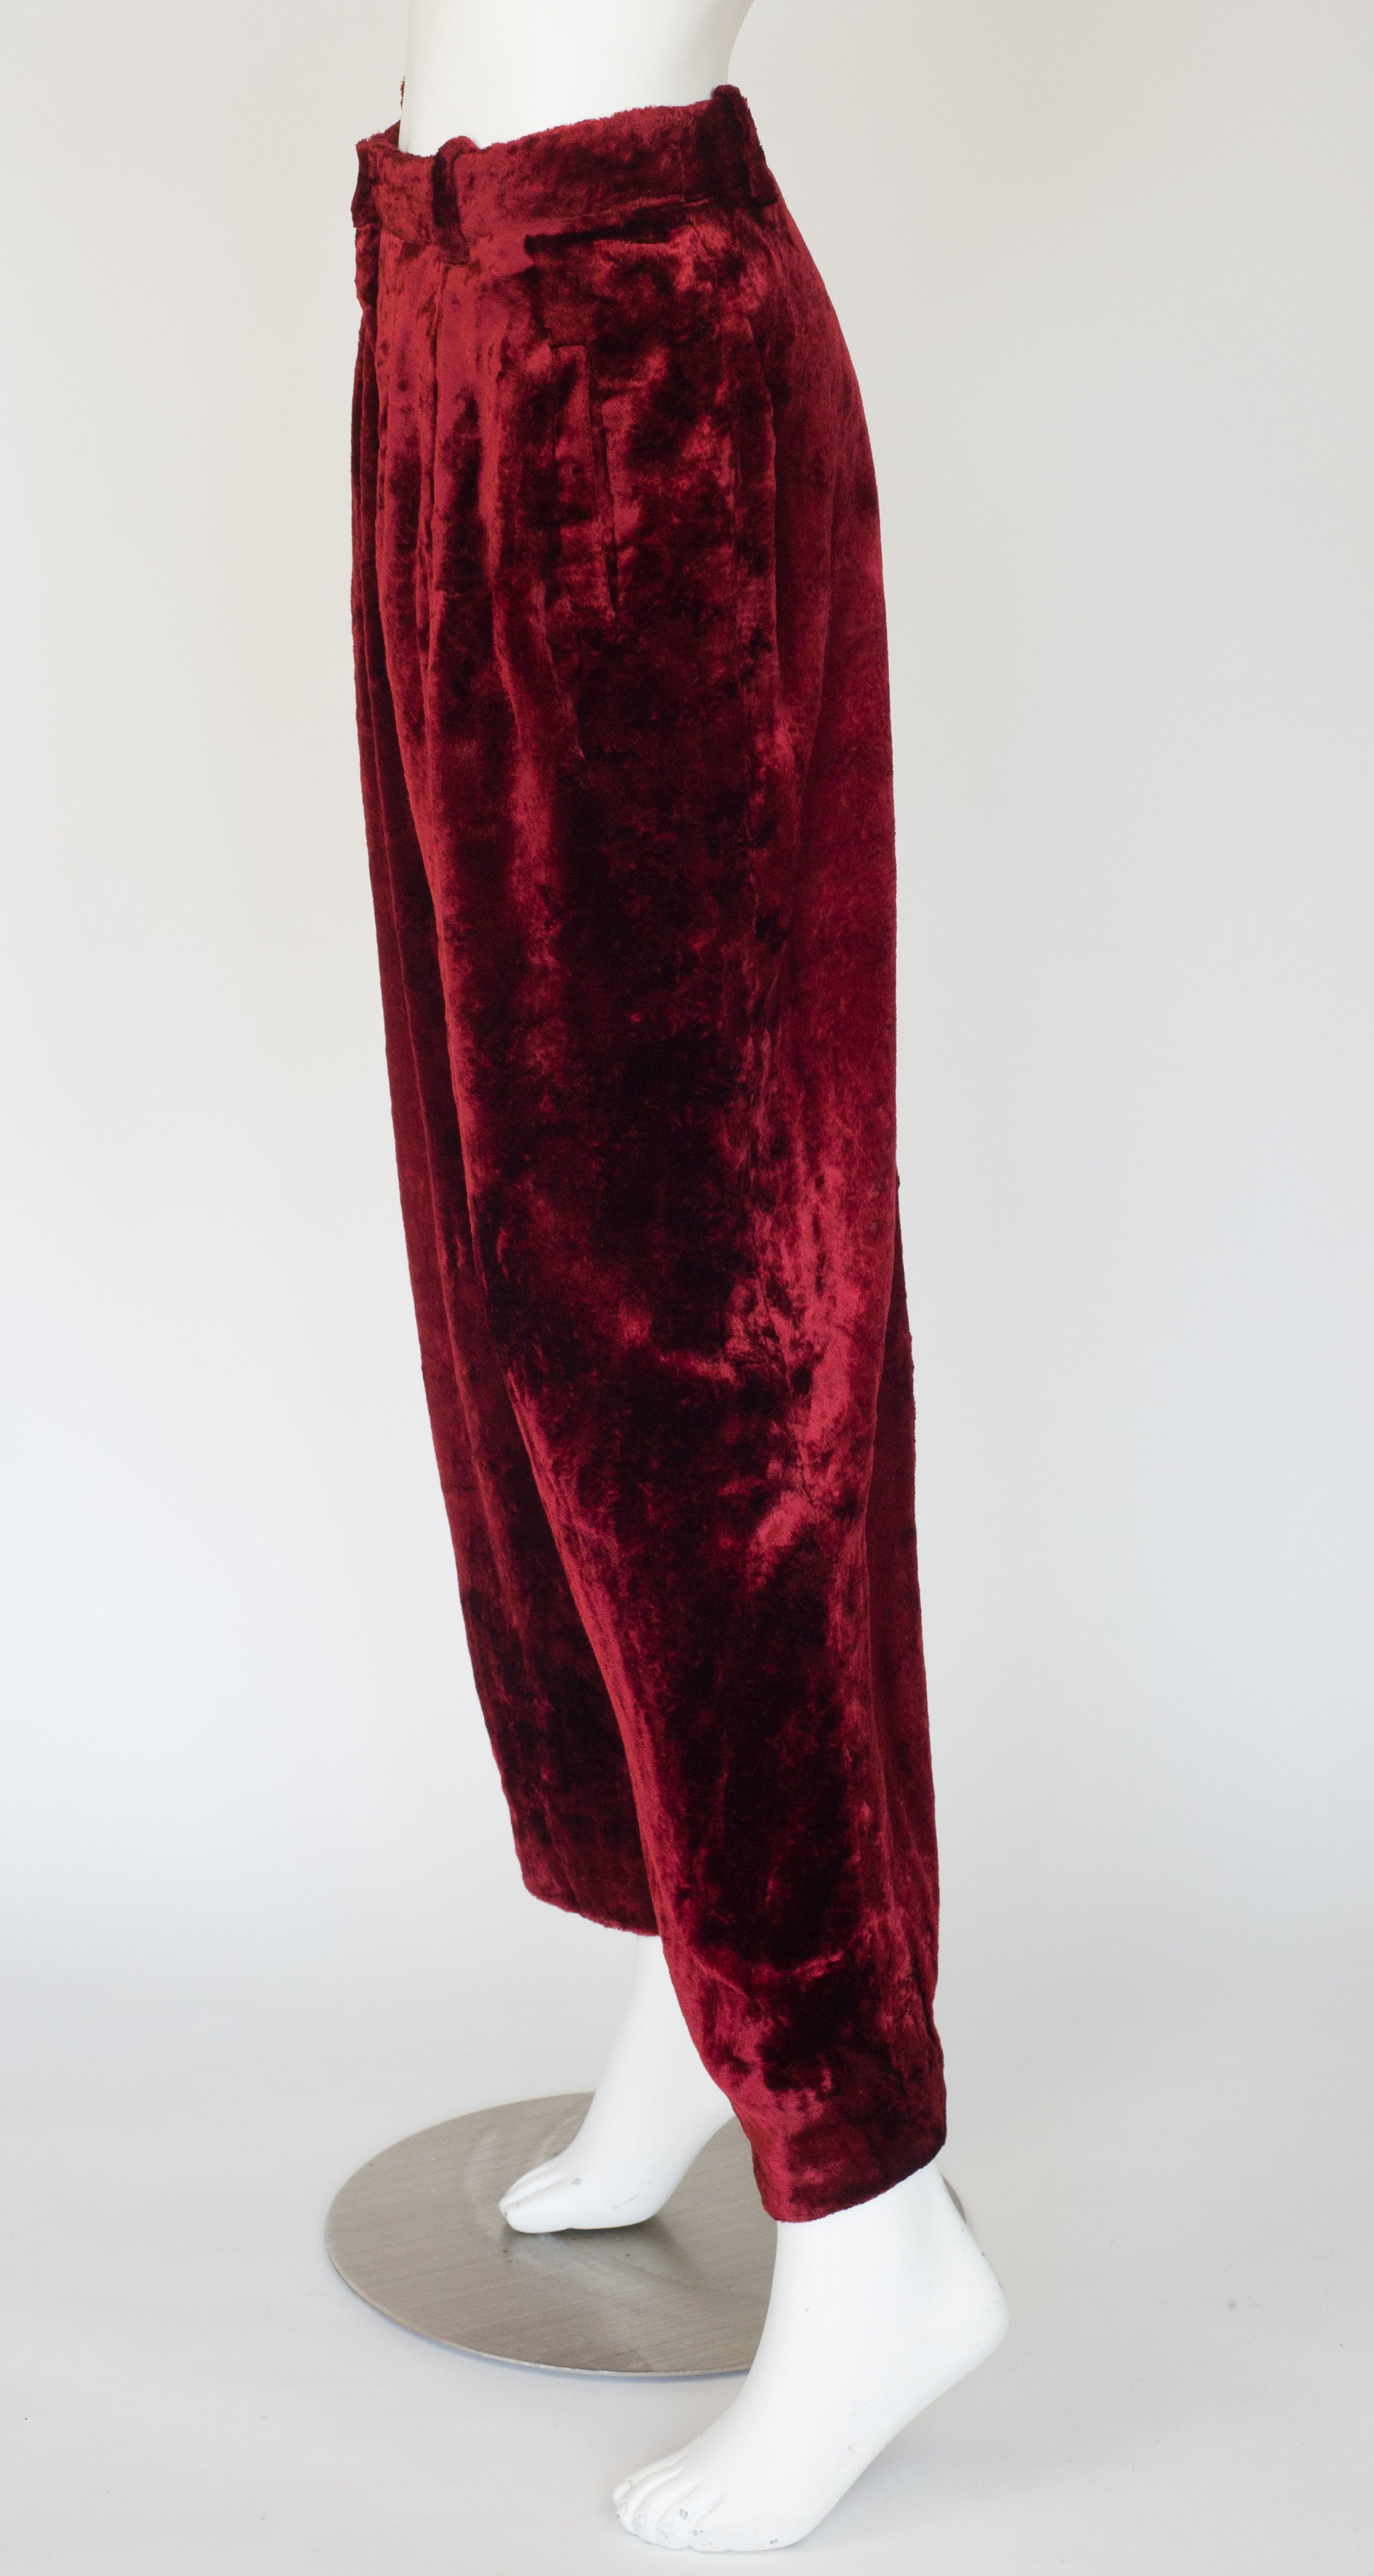 1990s Burgundy Crushed Velvet Wide-Leg Trousers